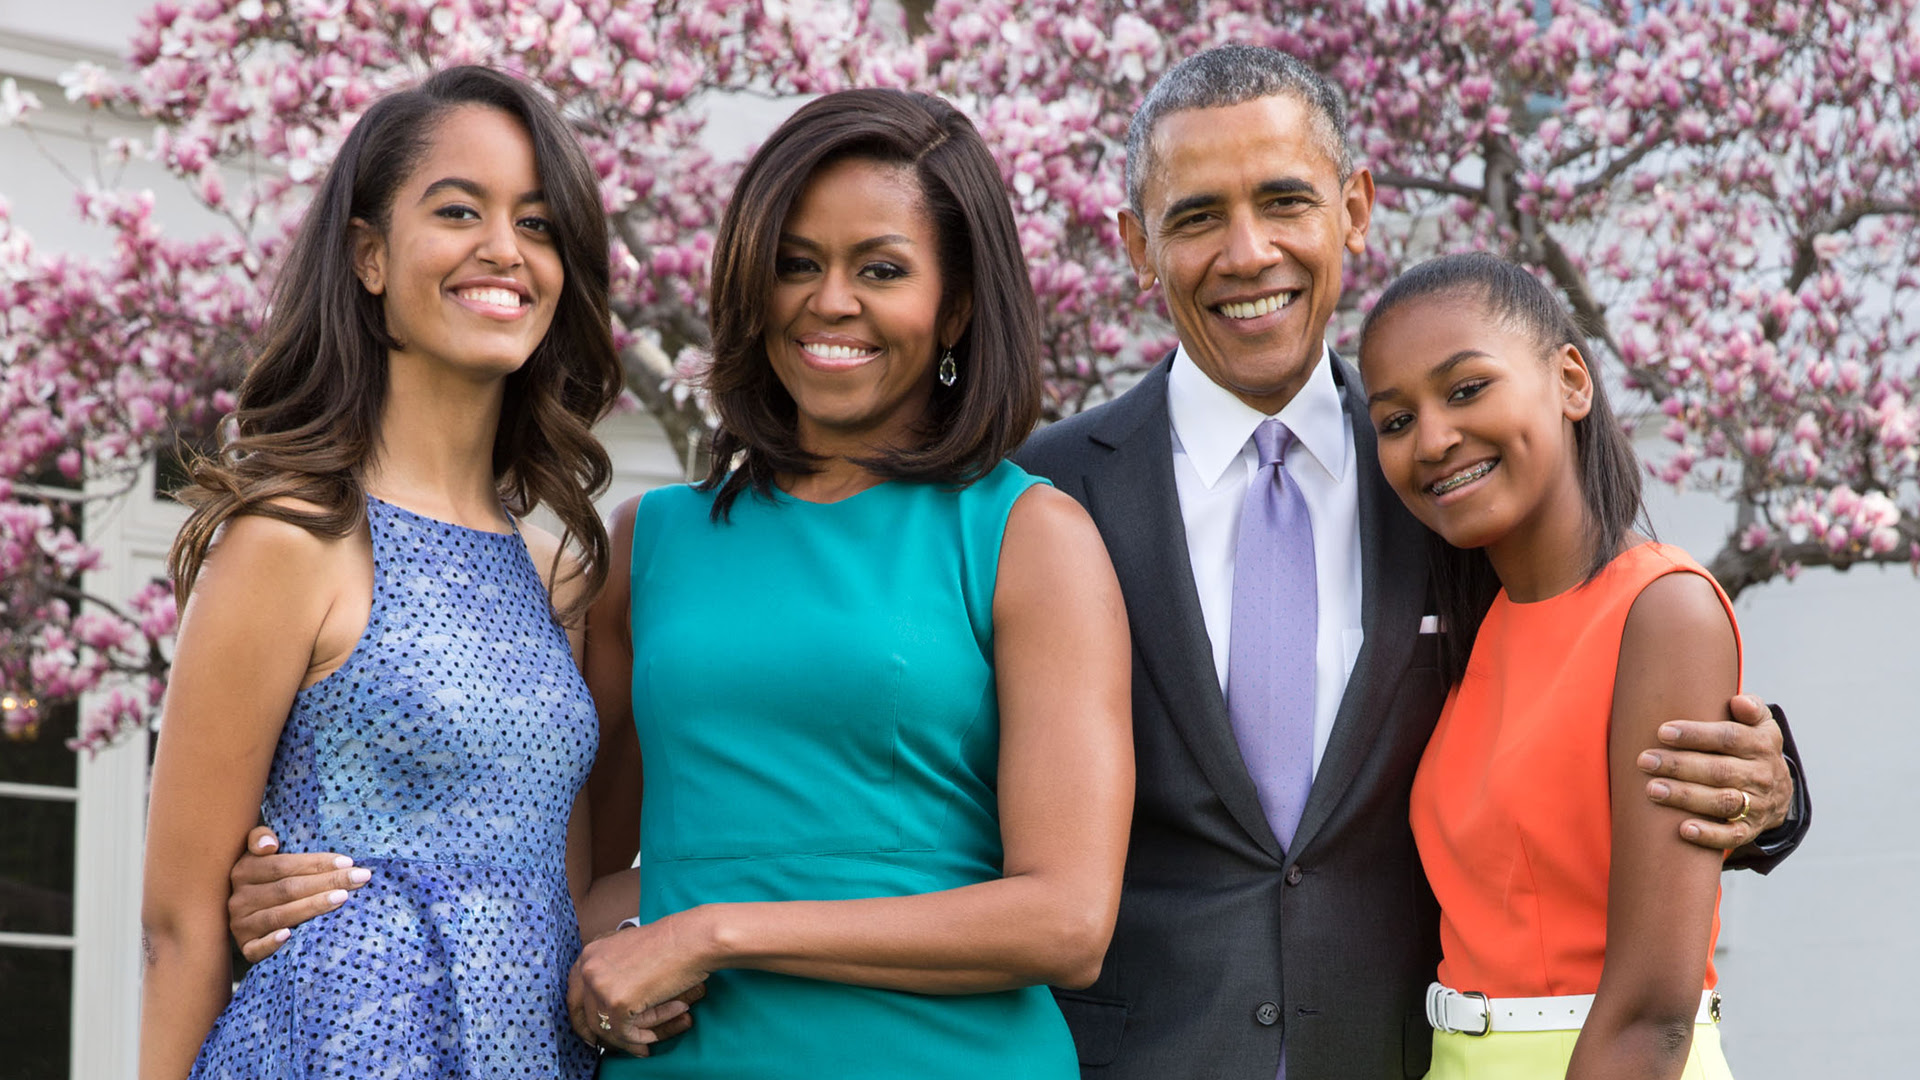 Image result for PICTURE OF THE OBAMAS